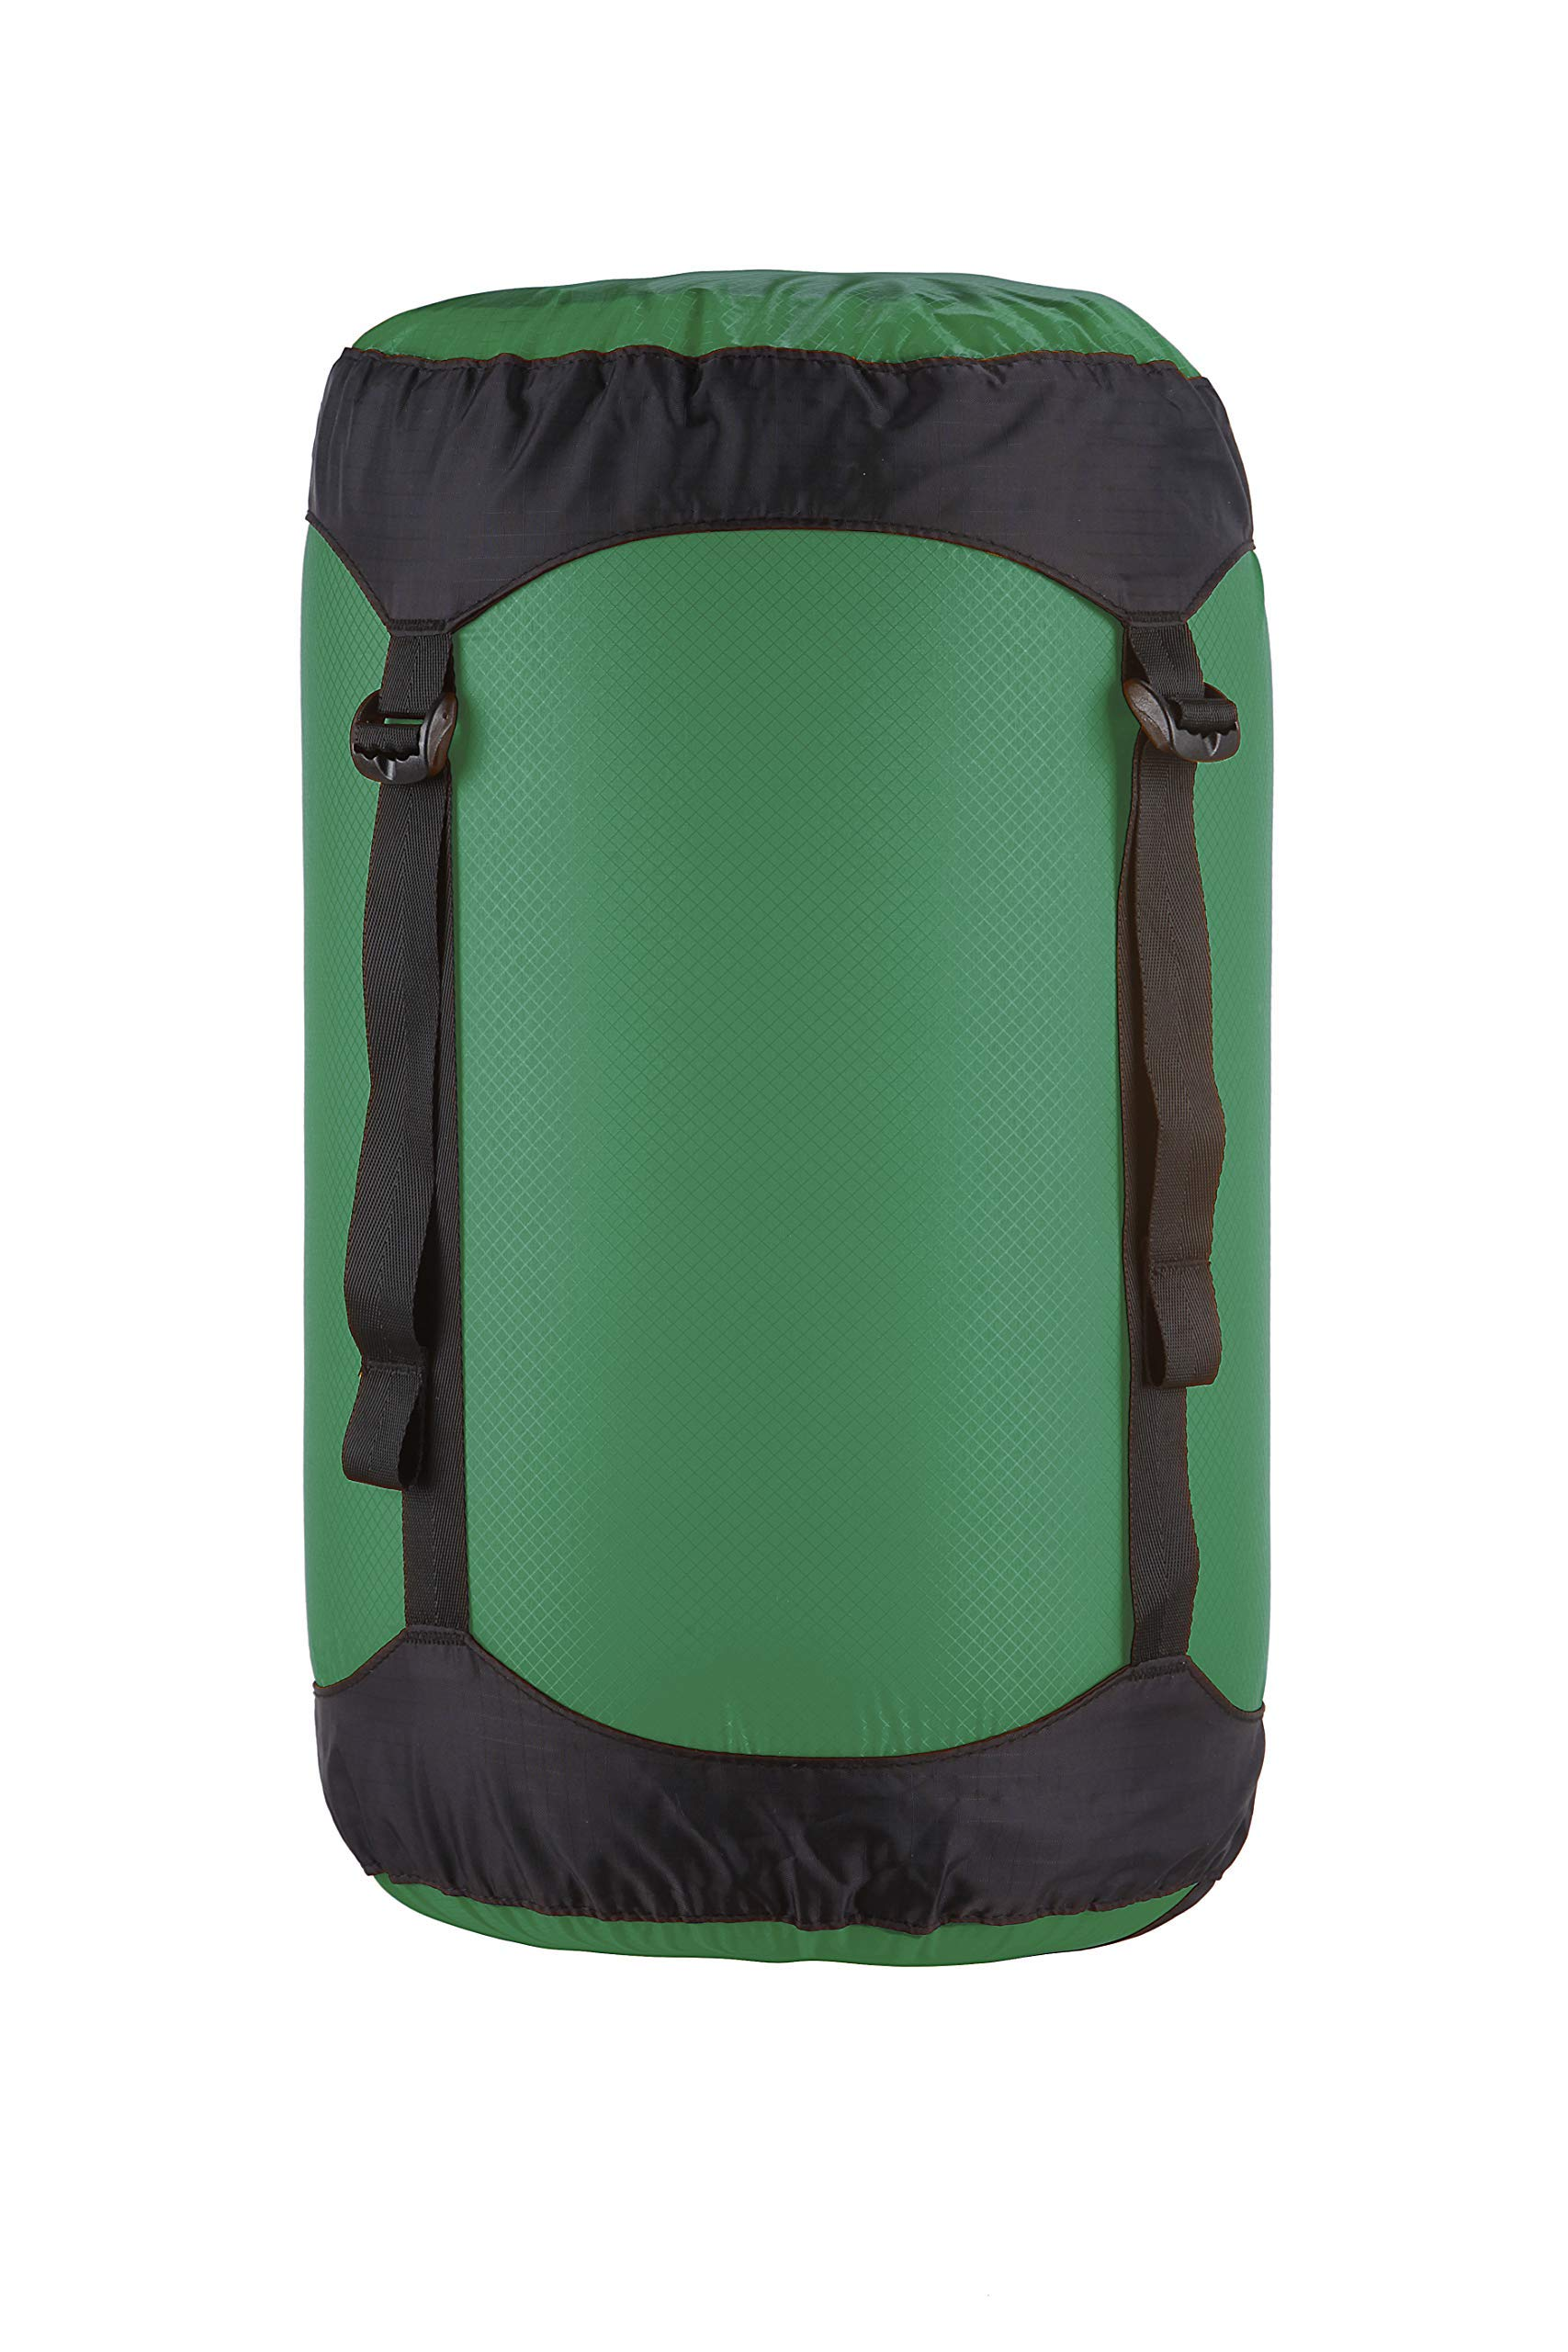 Sea to Summit Ultra-SIL Compression Sack, Forest Green, 30 Liter by Sea to Summit